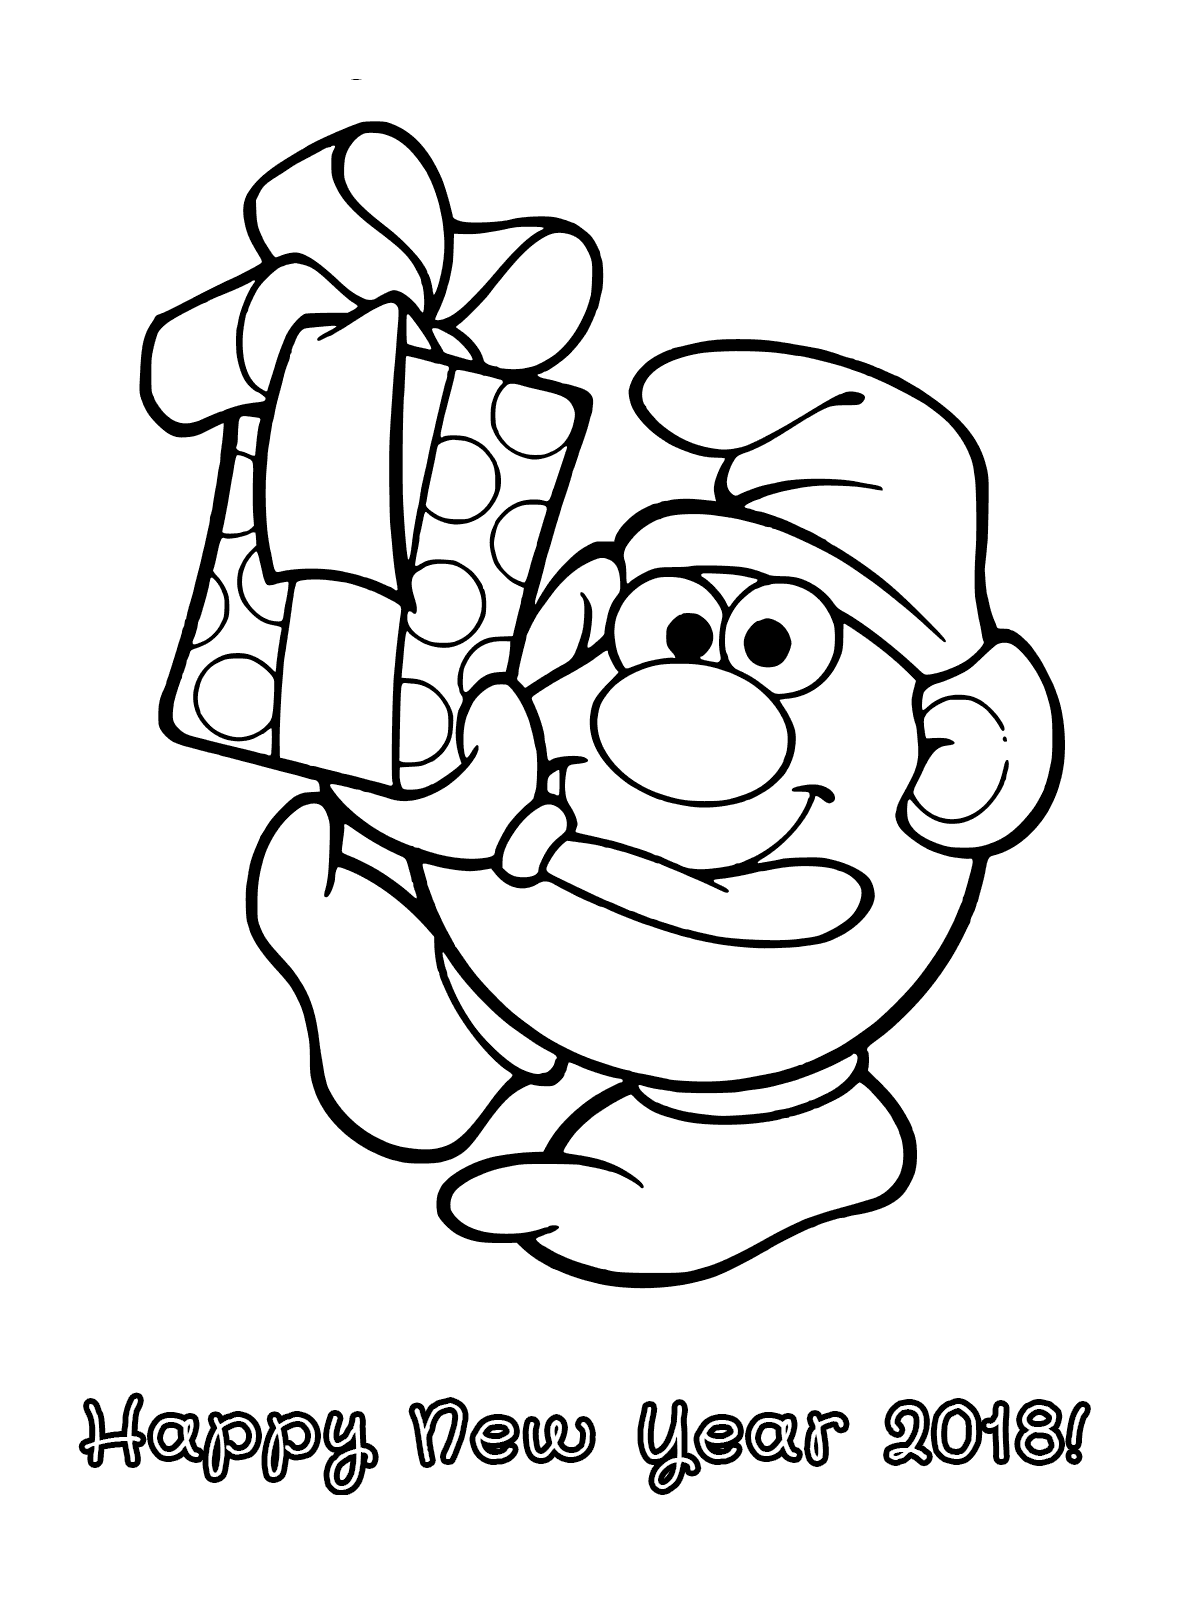 New Year 2018 Coloring Page Mr Potato Head